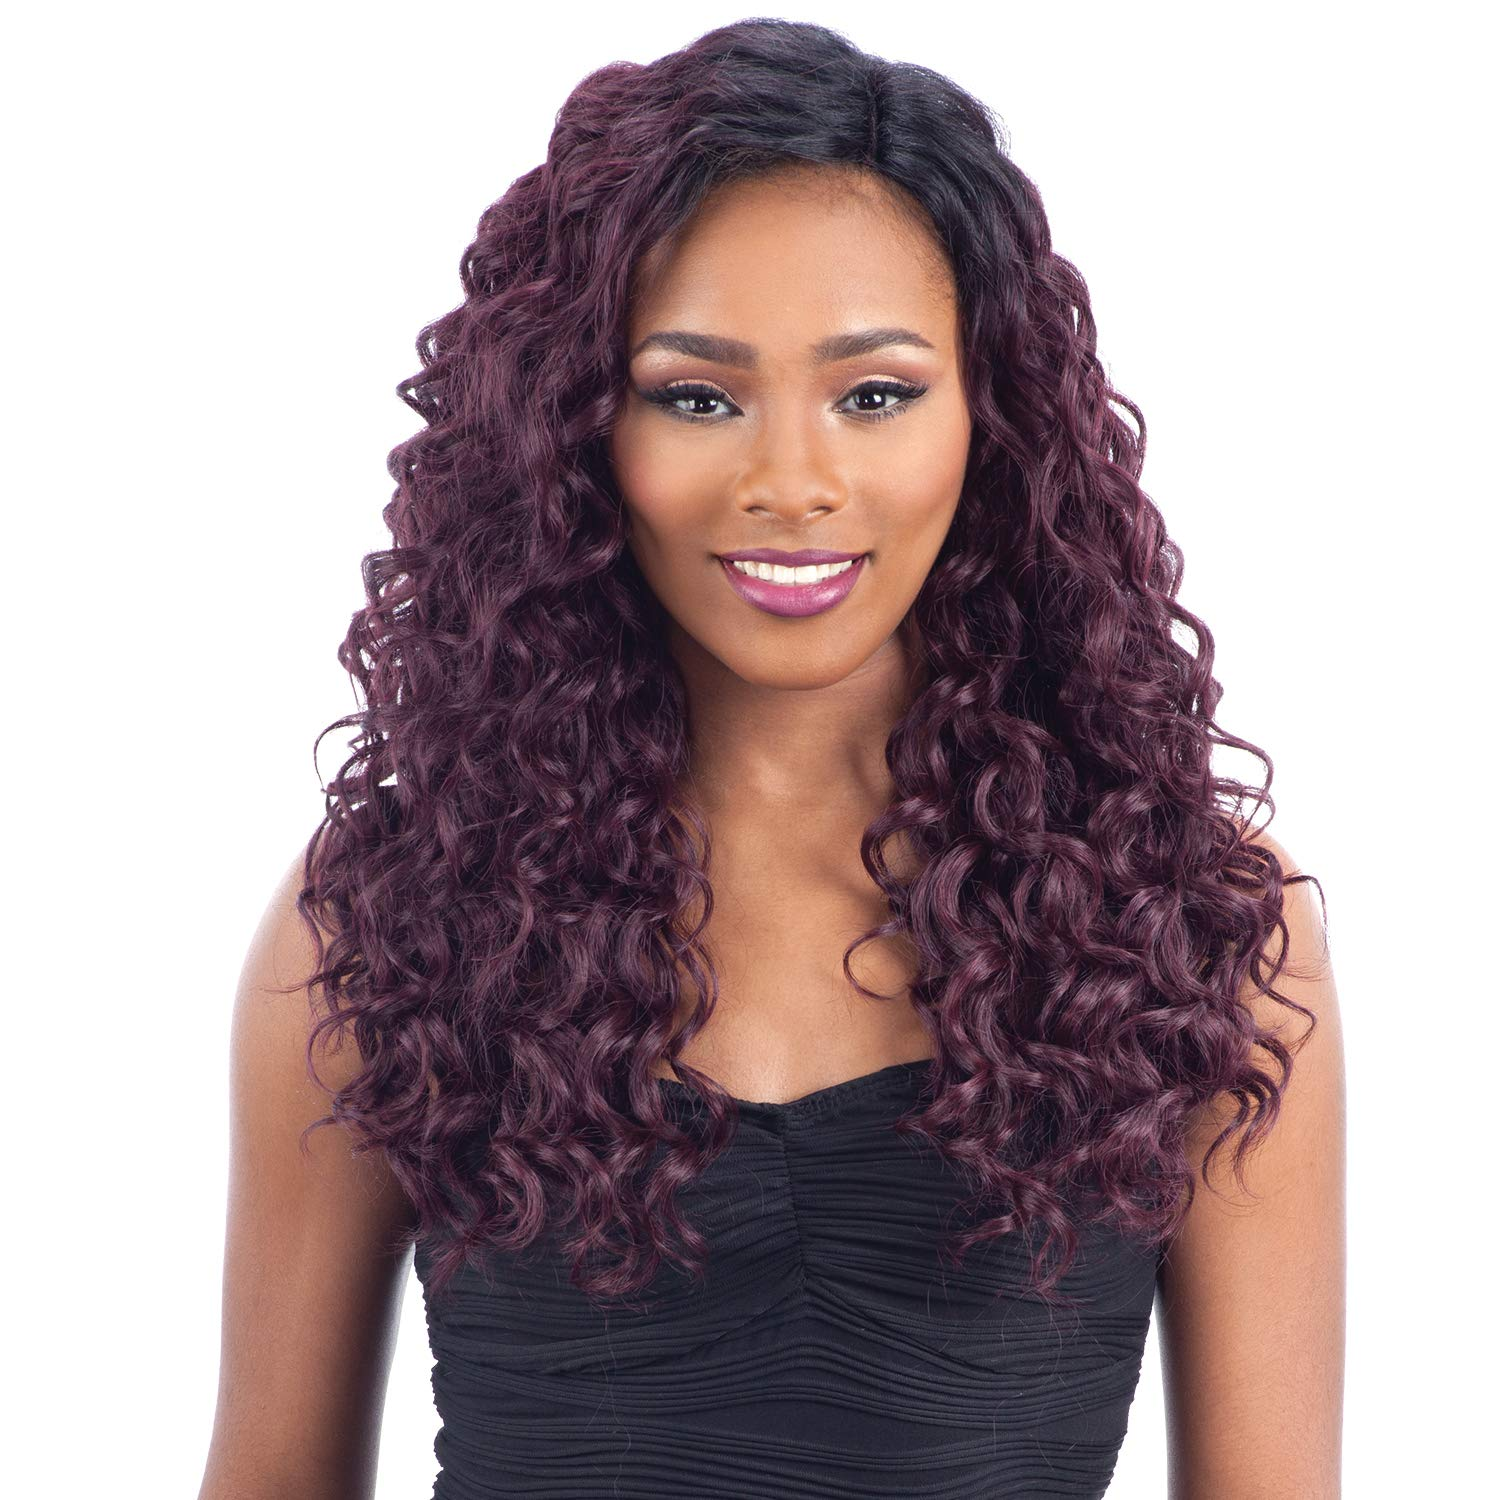 FreeTress Equal Synthetic Full Wig FREEDOM PART 104